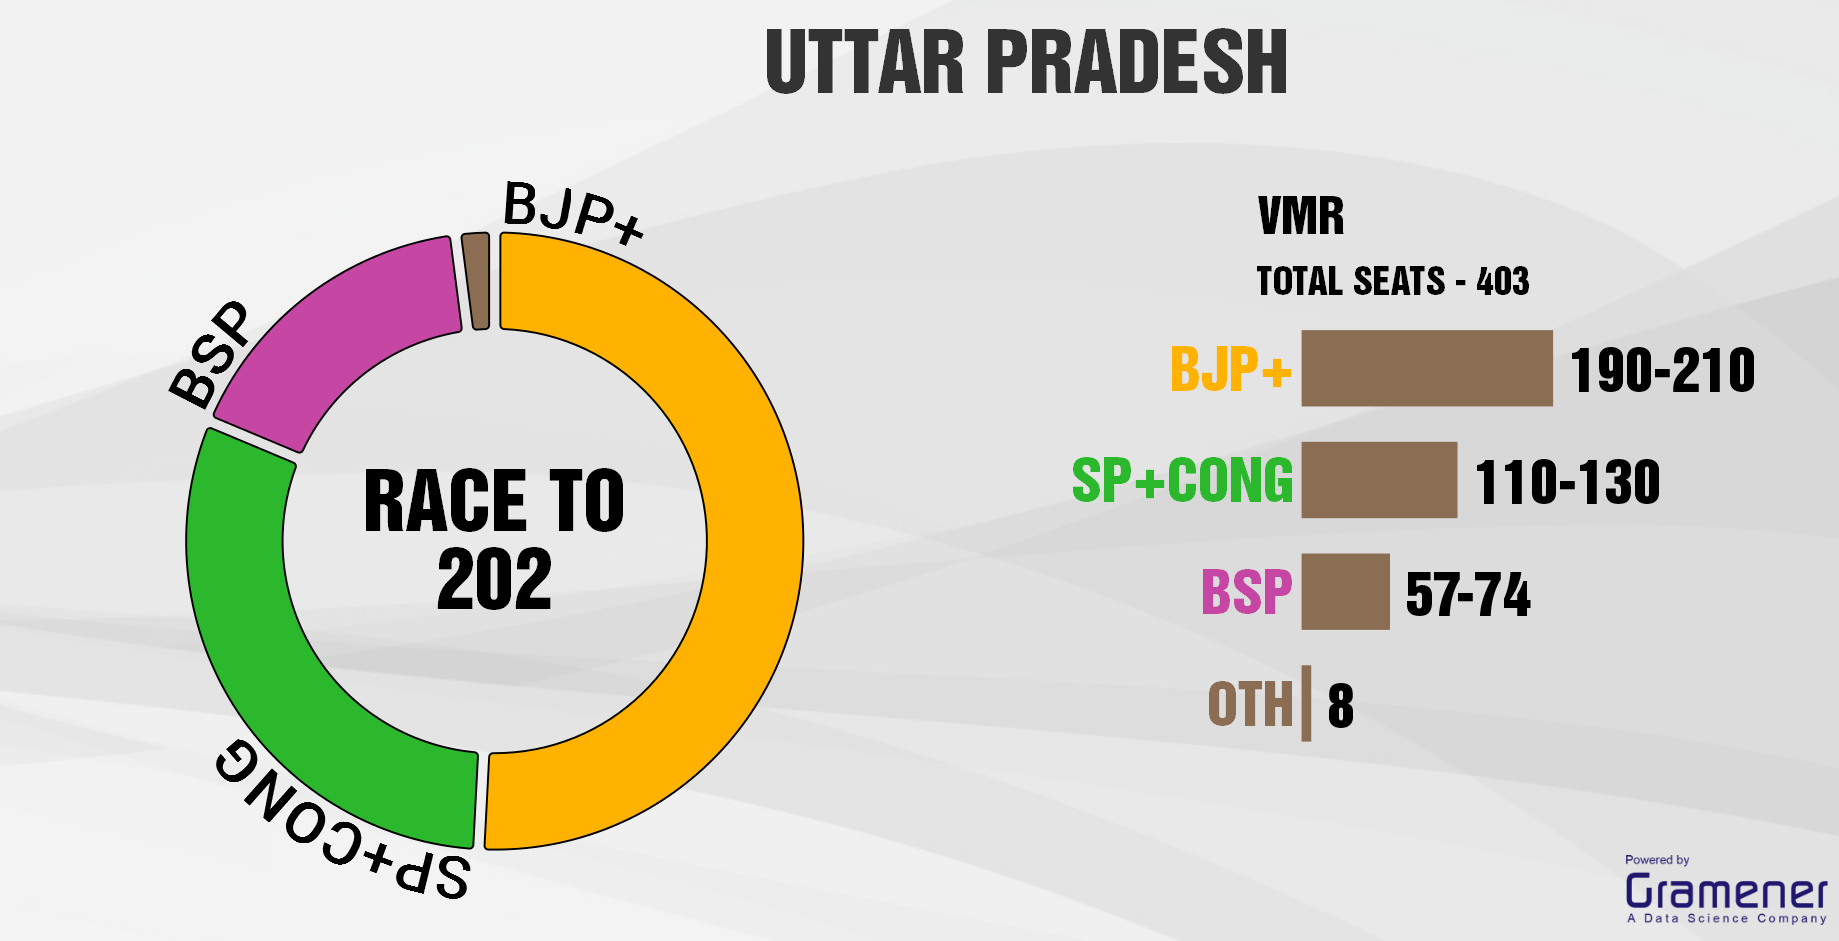 Exit Poll Results Live: 7/7 Pollsters Predict BJP Will Come First in Uttar Pradesh.